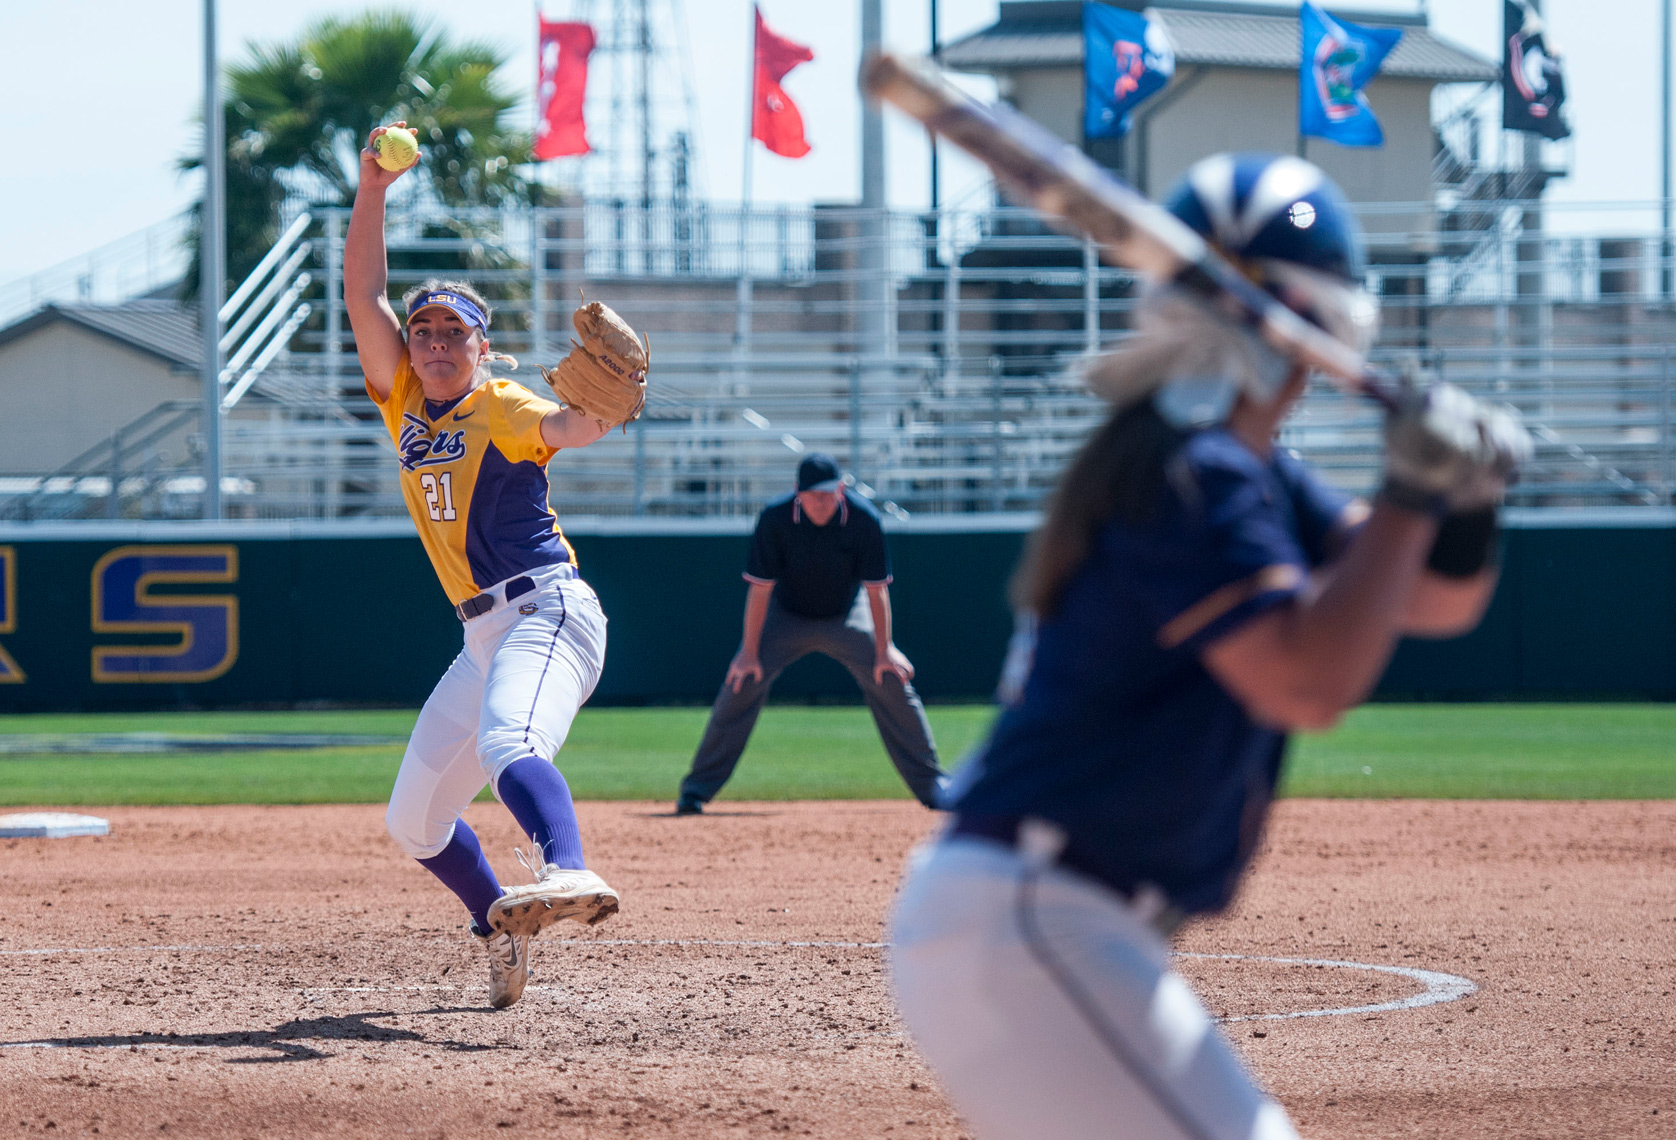 099_PhotoFolio_LSUsoftball